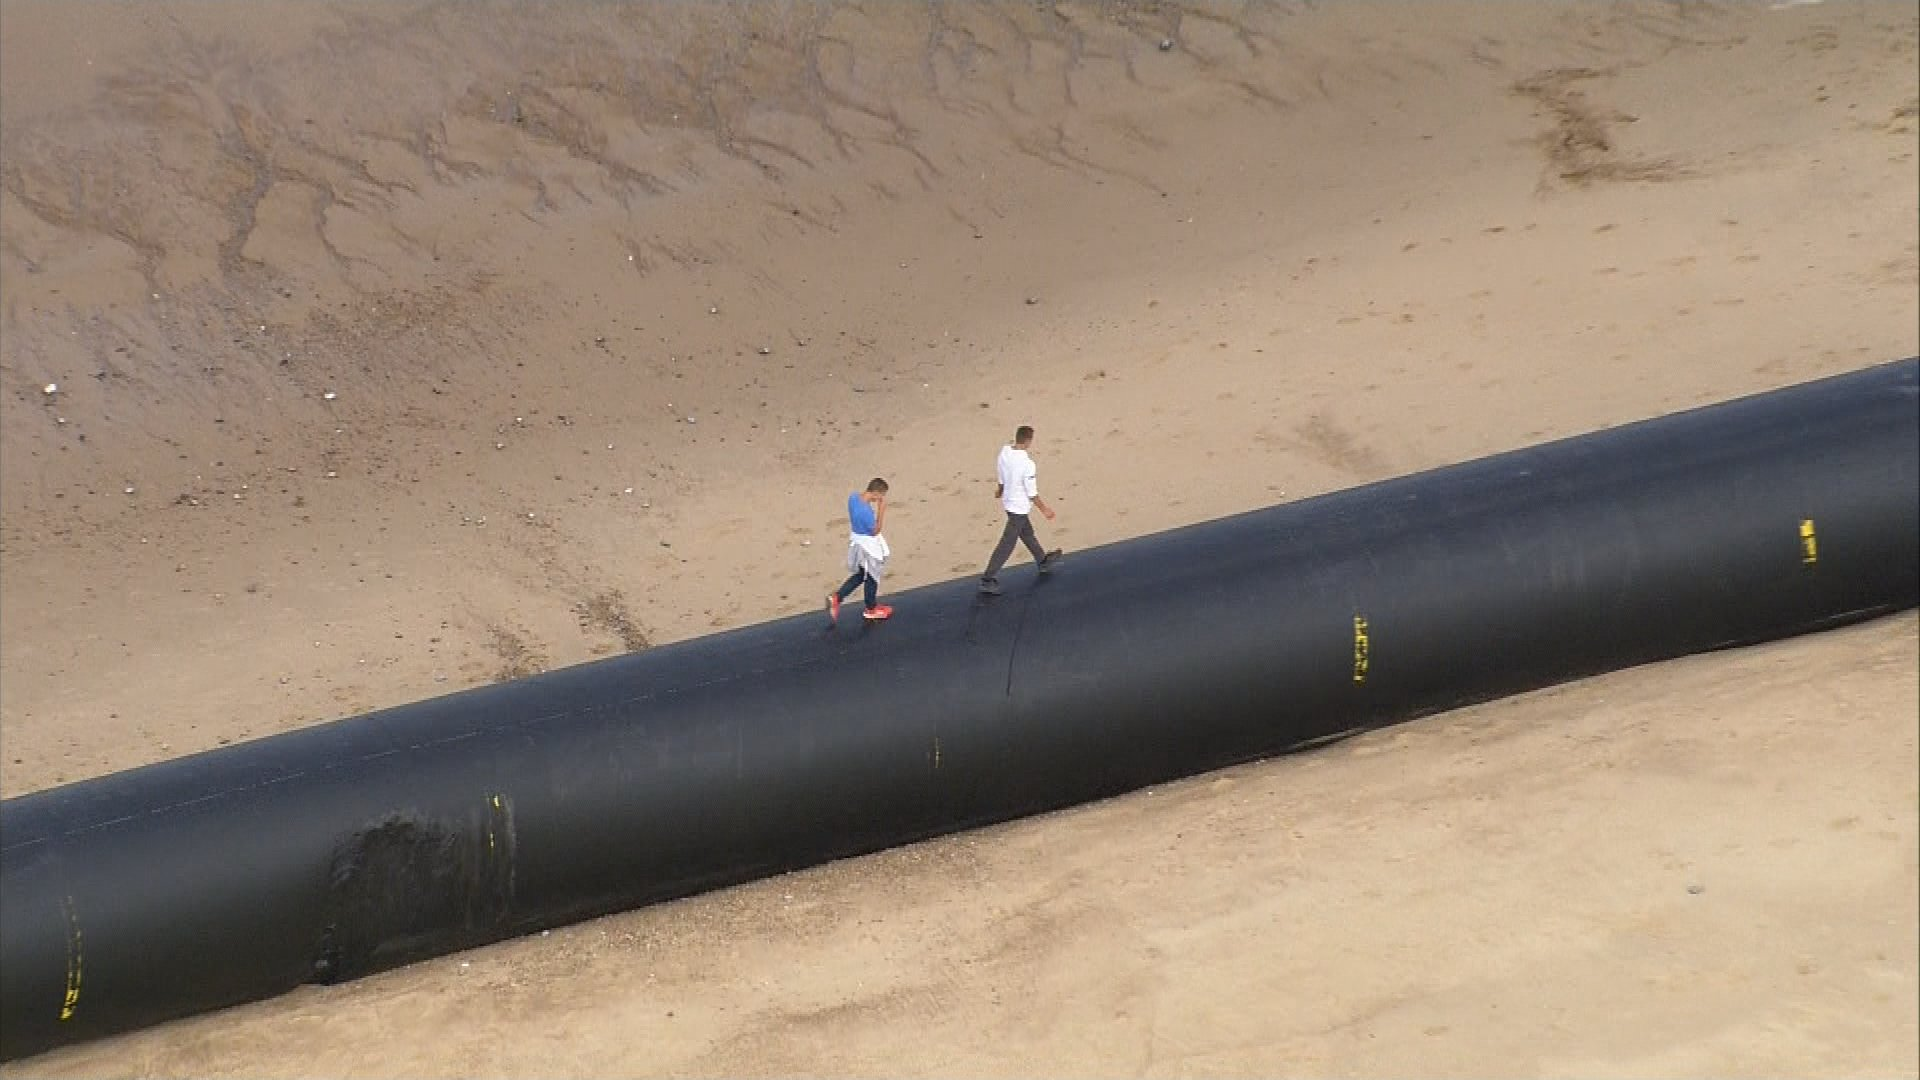 Giant pipes have washed up along several East Anglia beaches https://t.co/2MZdHMqntb https://t.co/kCjihNv0nU